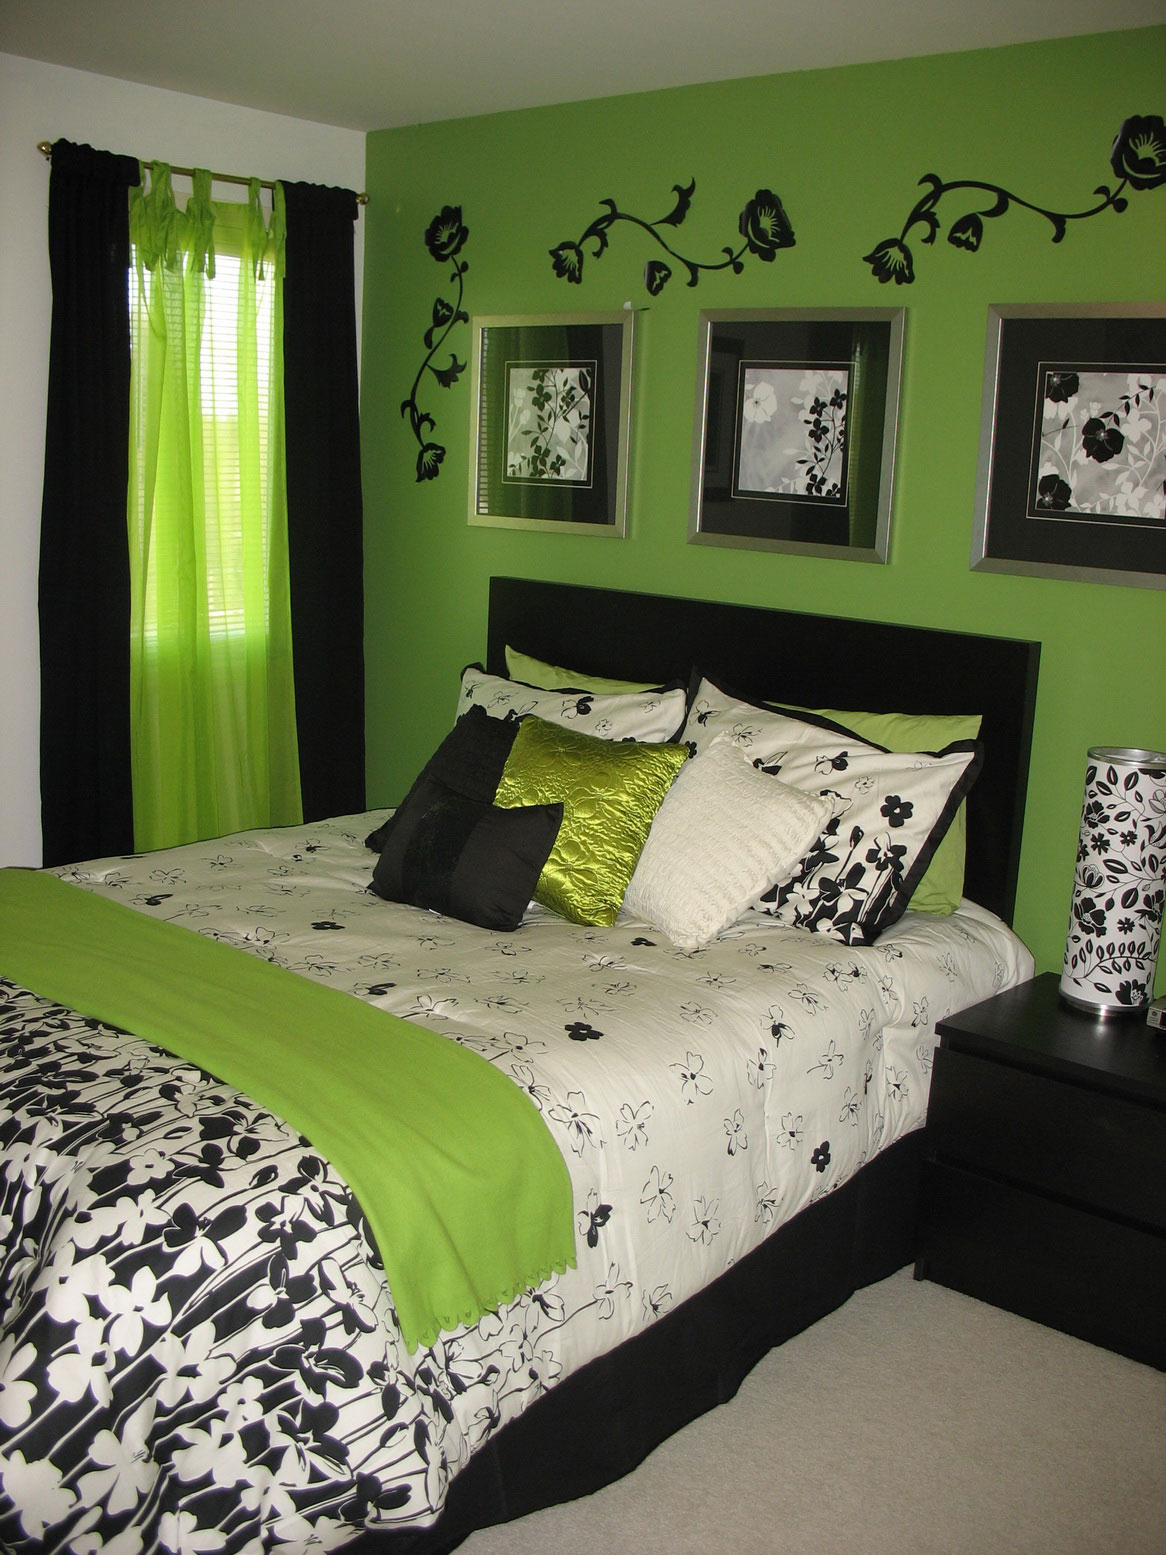 Bedroom ideas for young adults homesfeed for Bedroom bedroom ideas